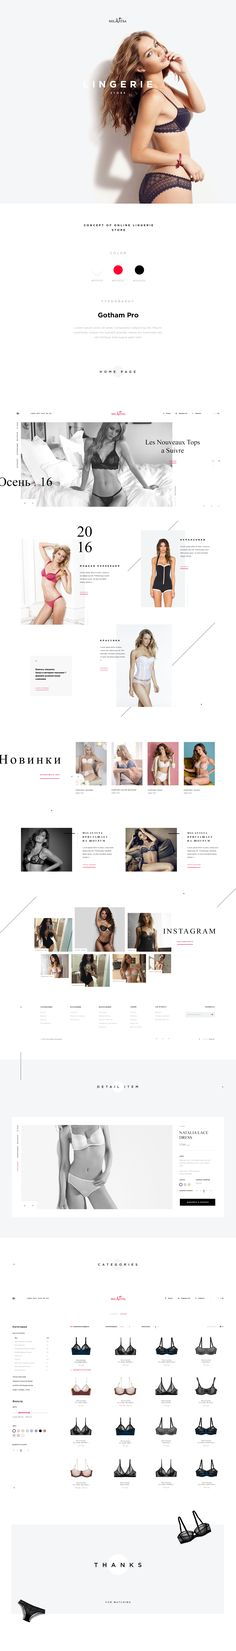 Concept design for an online store of lingerie, with an emphasis on typography and quality photos